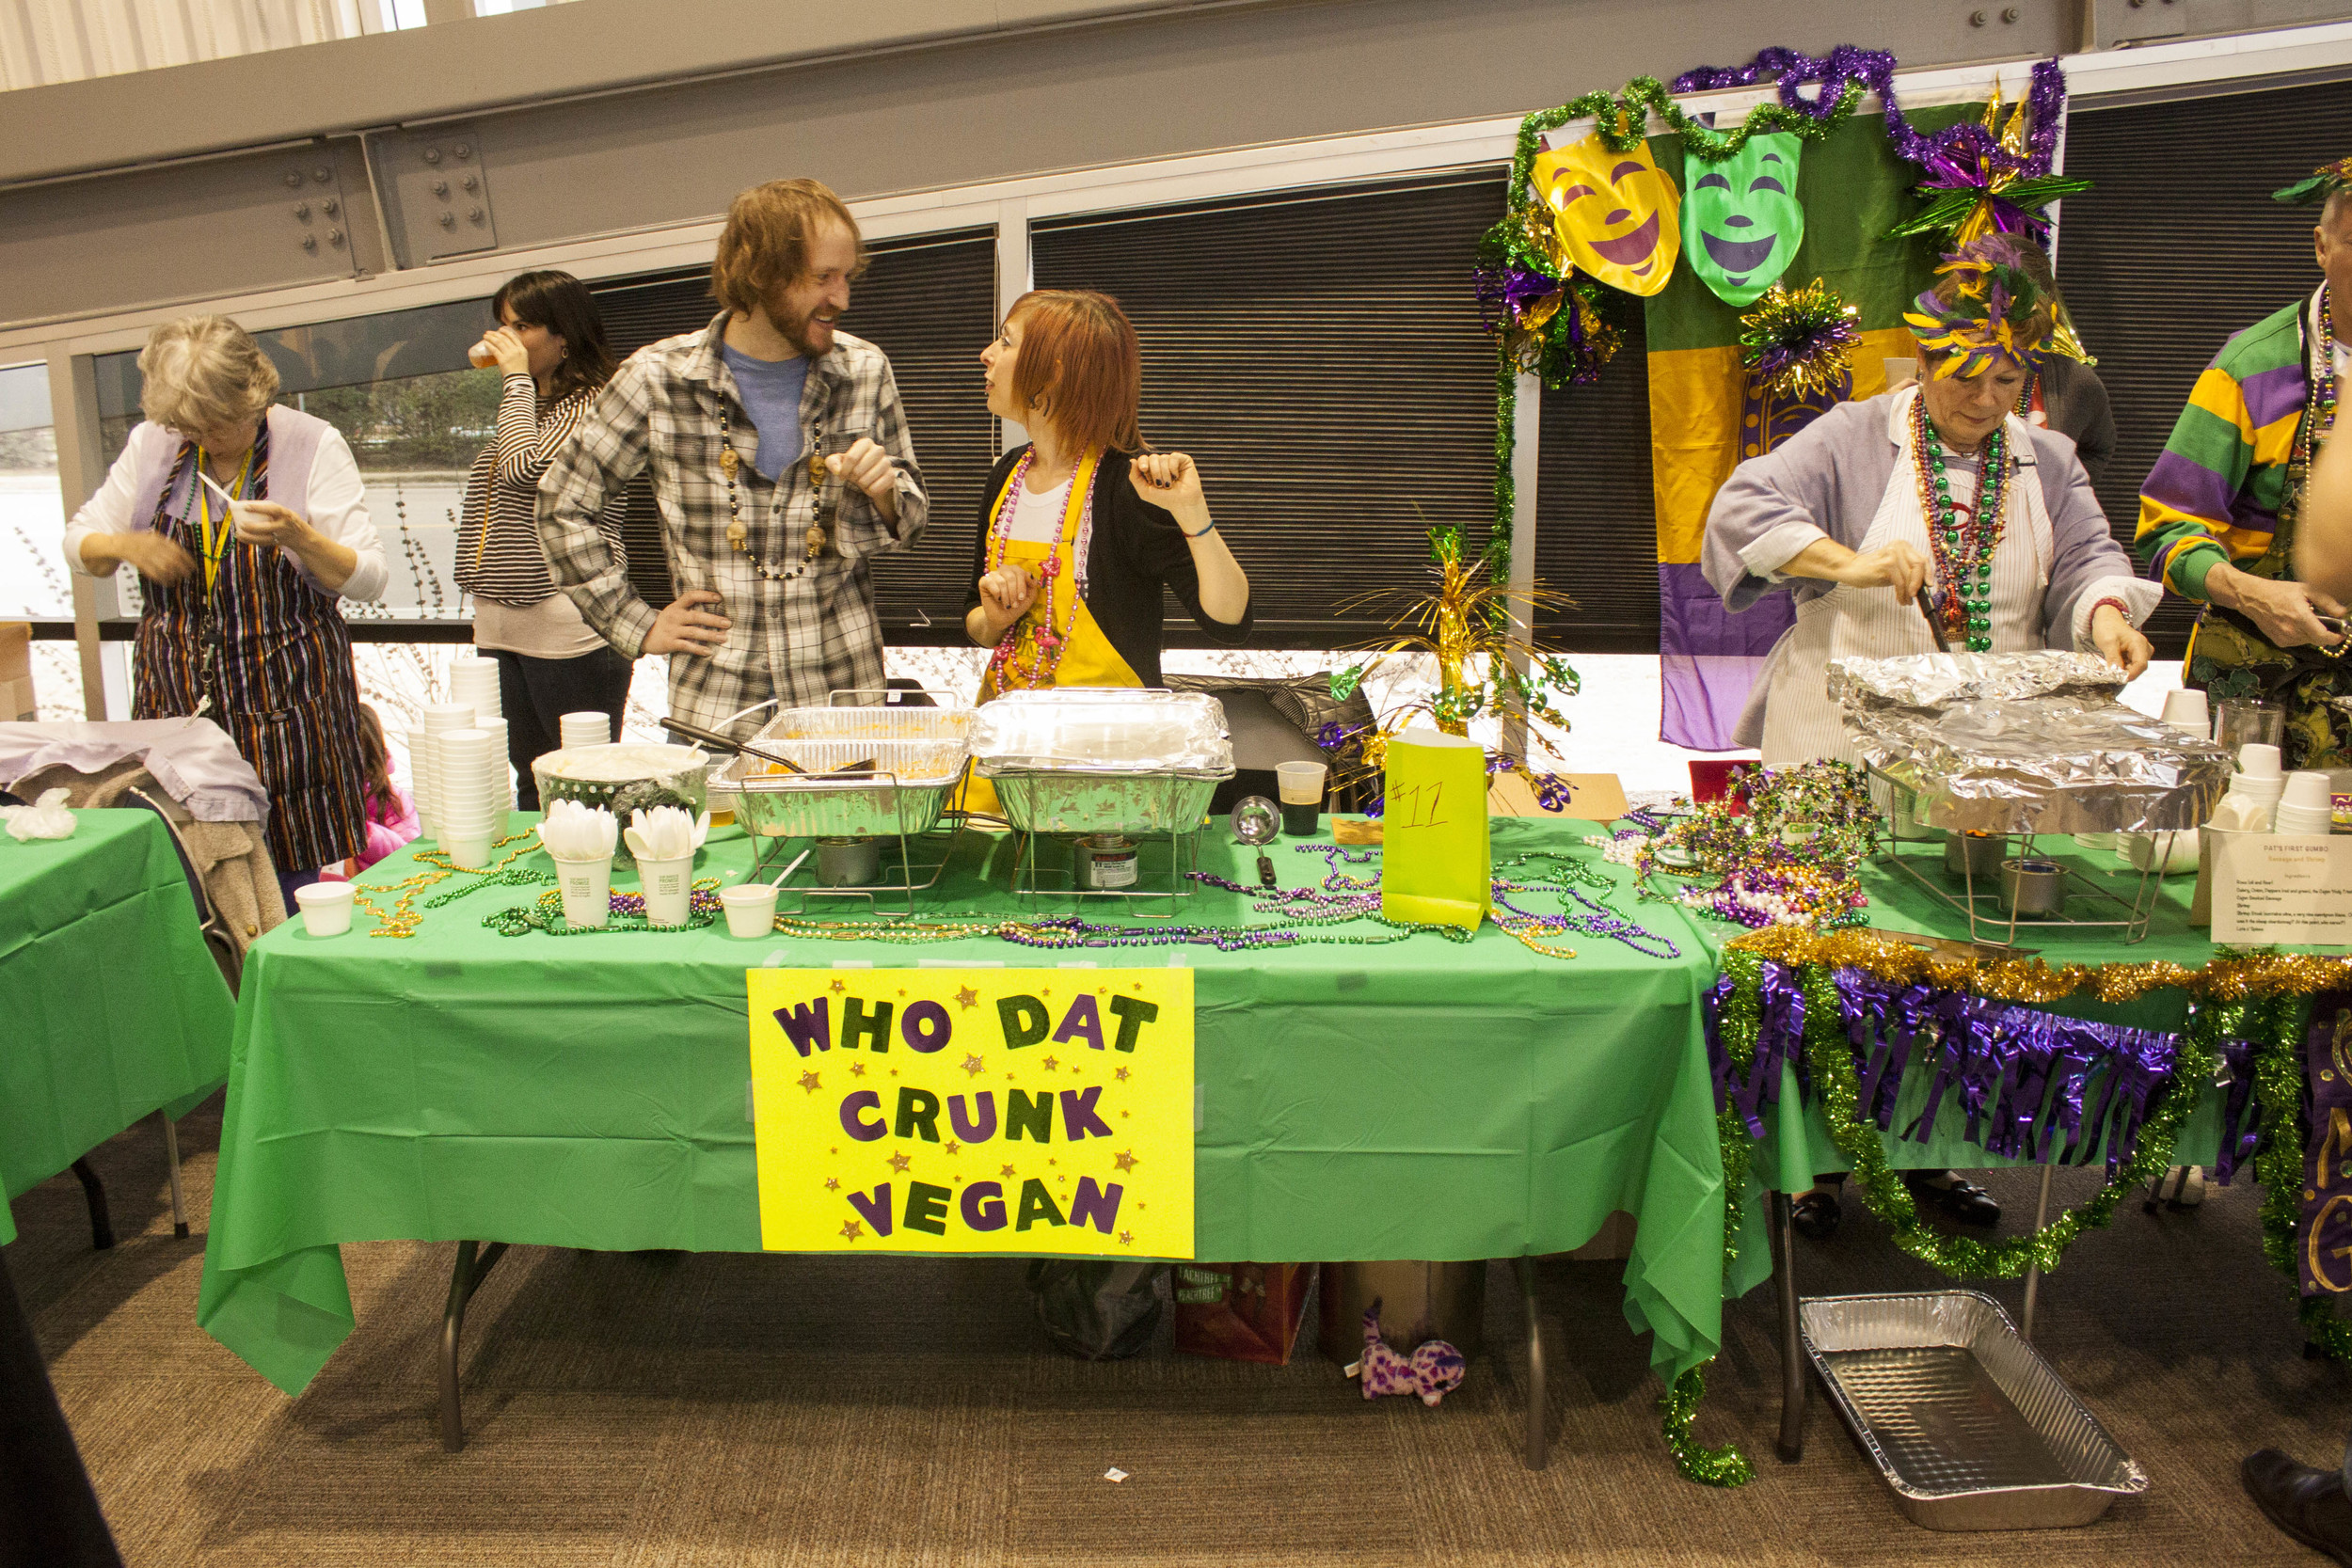 Memphis Flyer Gaydar writer Bianca Phillips competed with a delicious vegan gumbo.